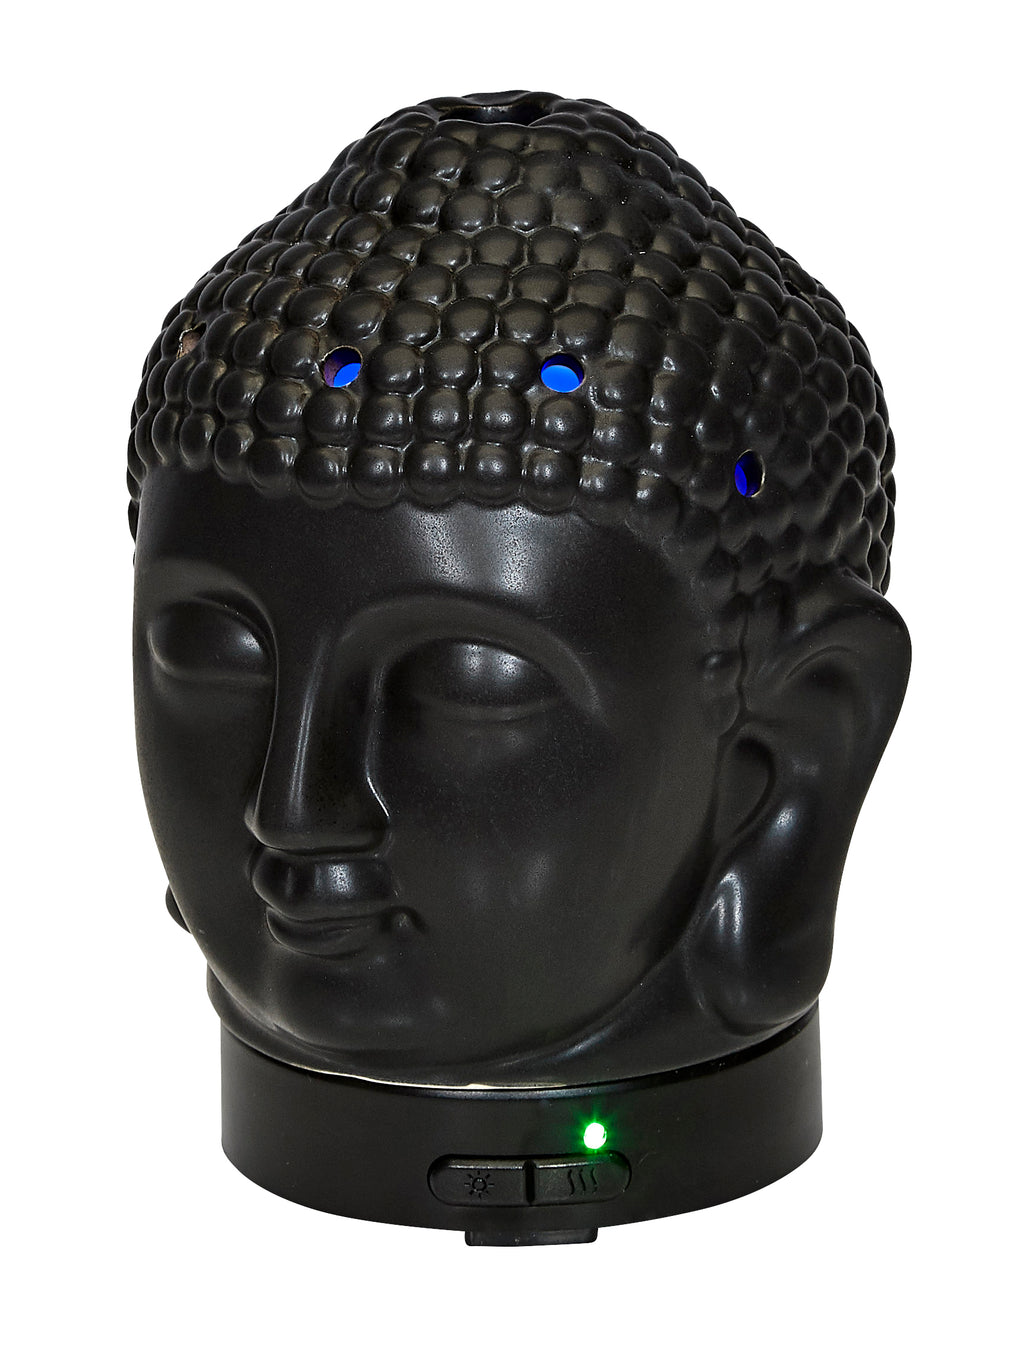 Ceramic Buddha Ultrasonic Oil Diffuser 100ml